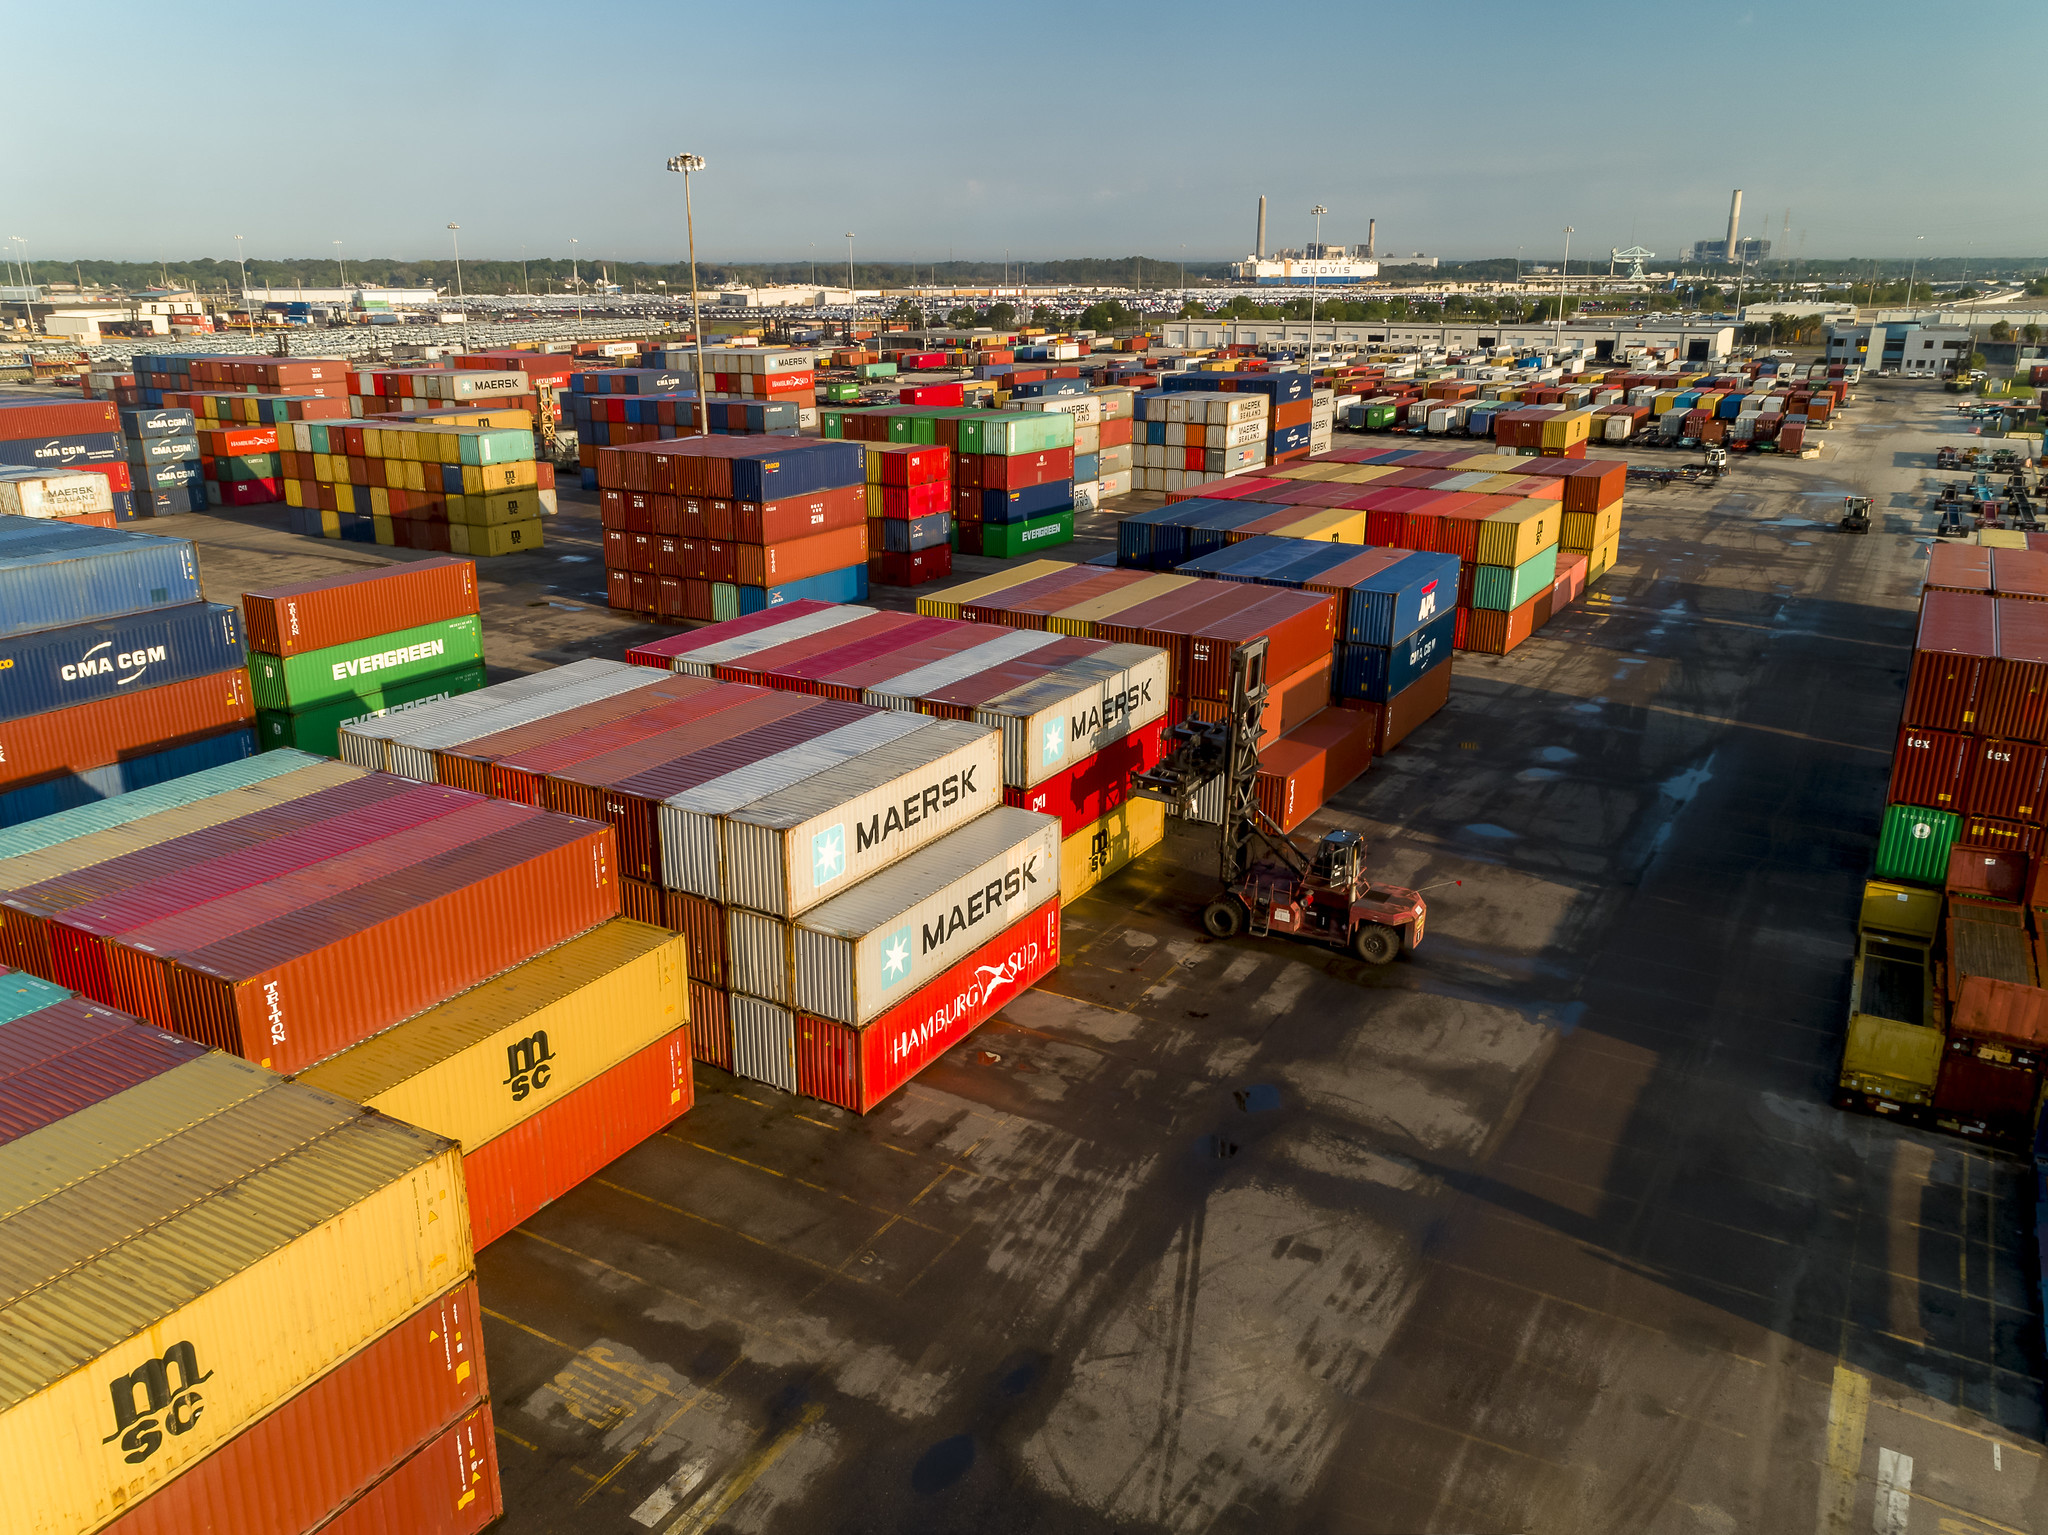 A photograph of containers at the Port of Jacksonville.